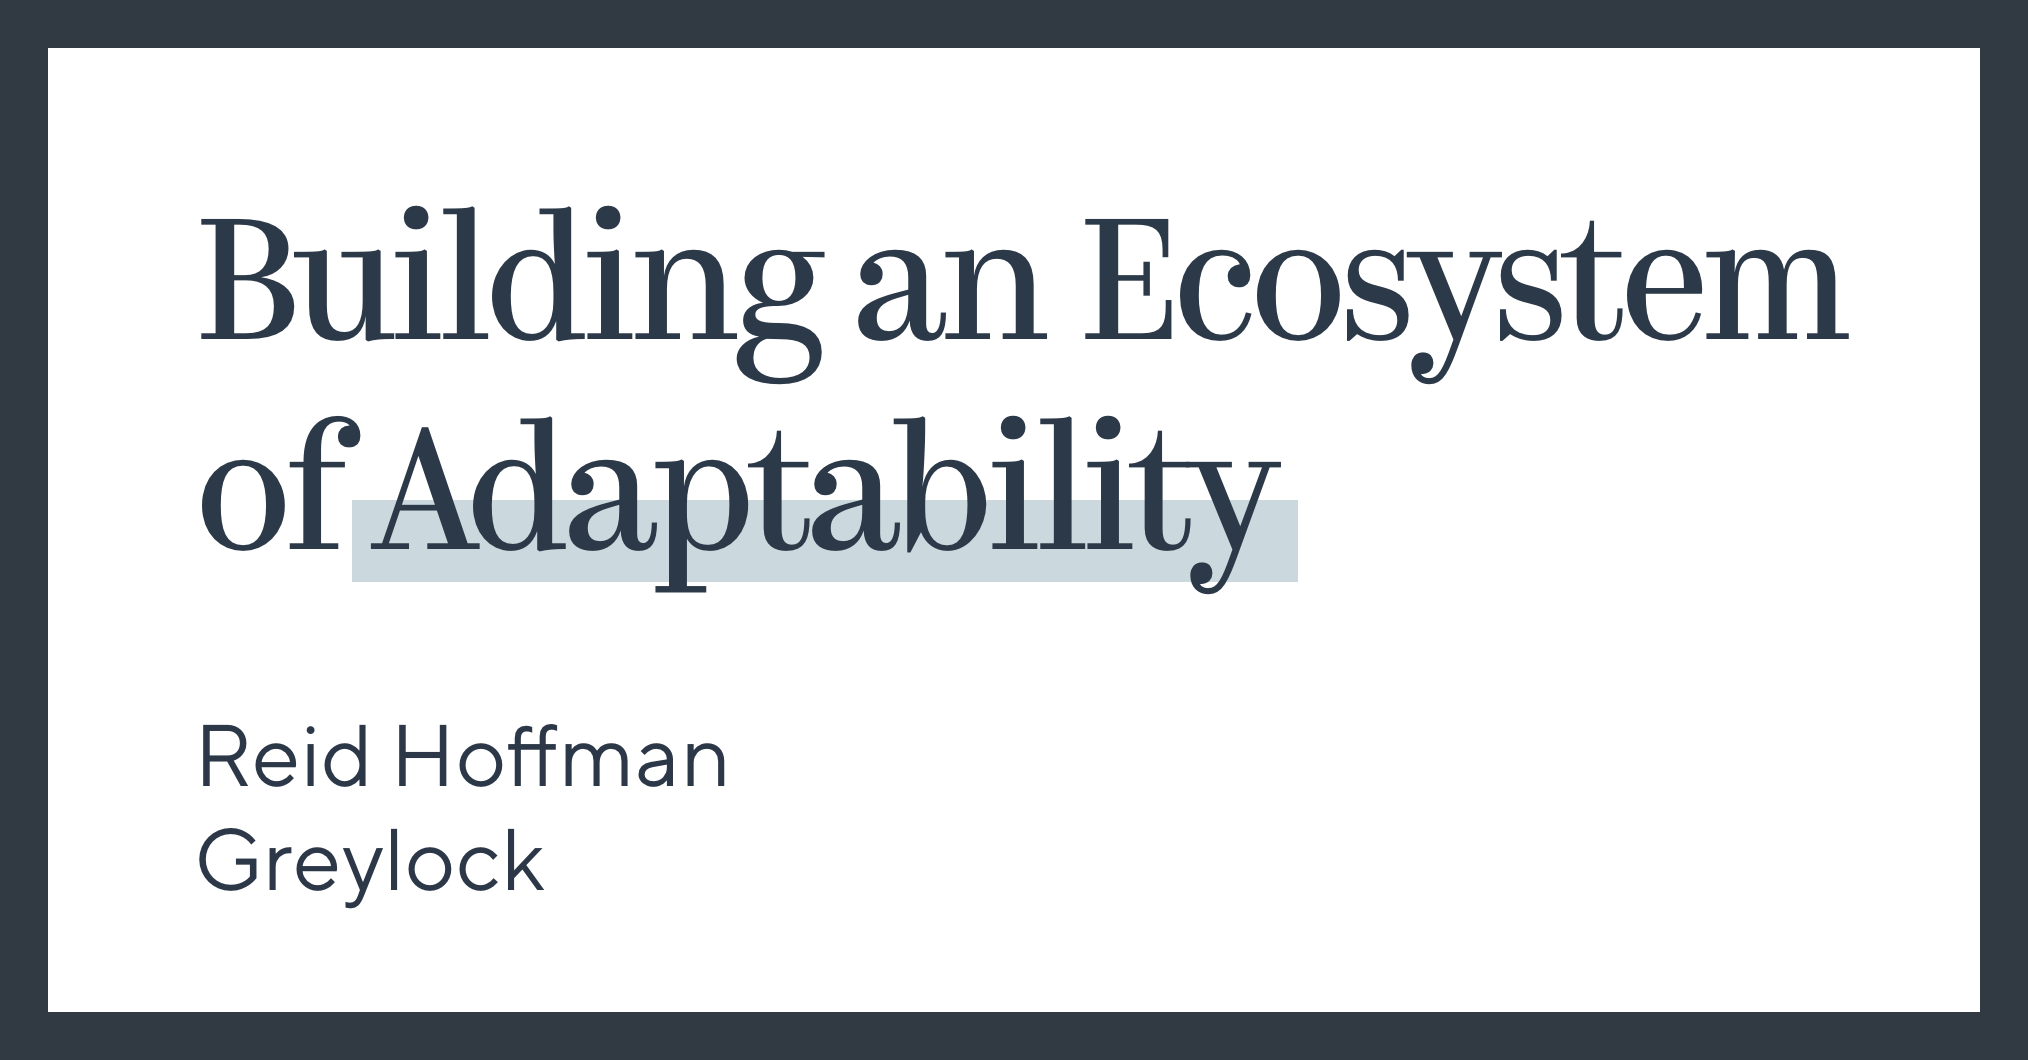 Building Ecosystems of Adaptability